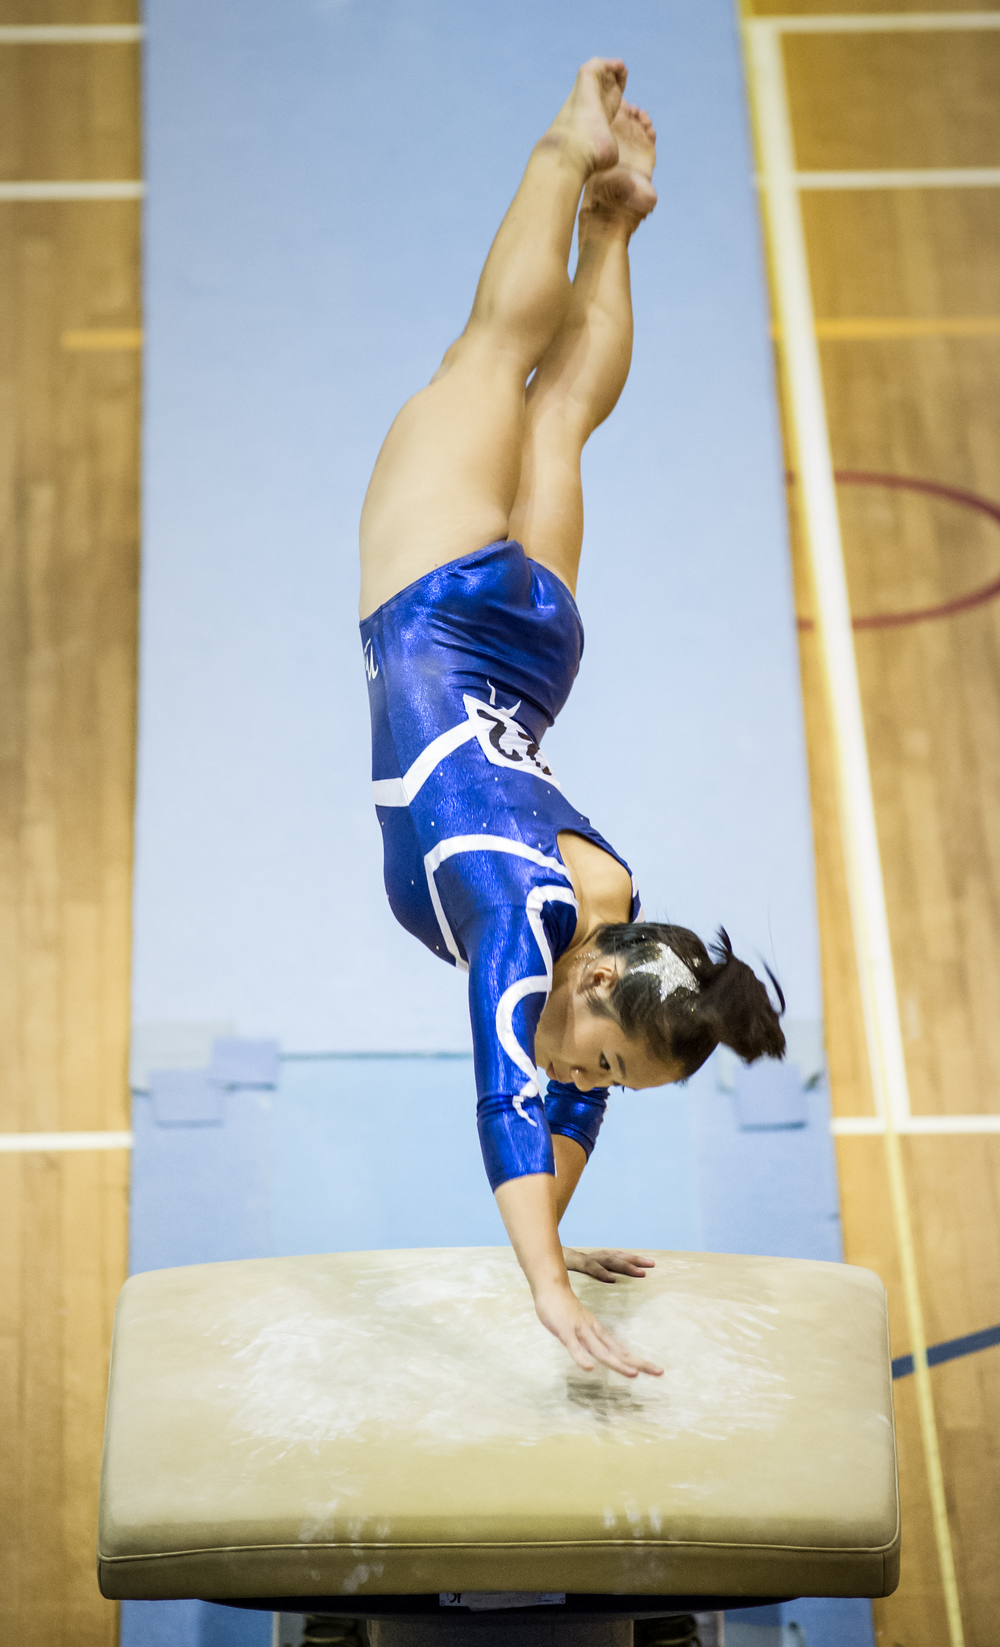 A gymnast does a vault during the National Schools Championships at the Bishan Sports Hall.